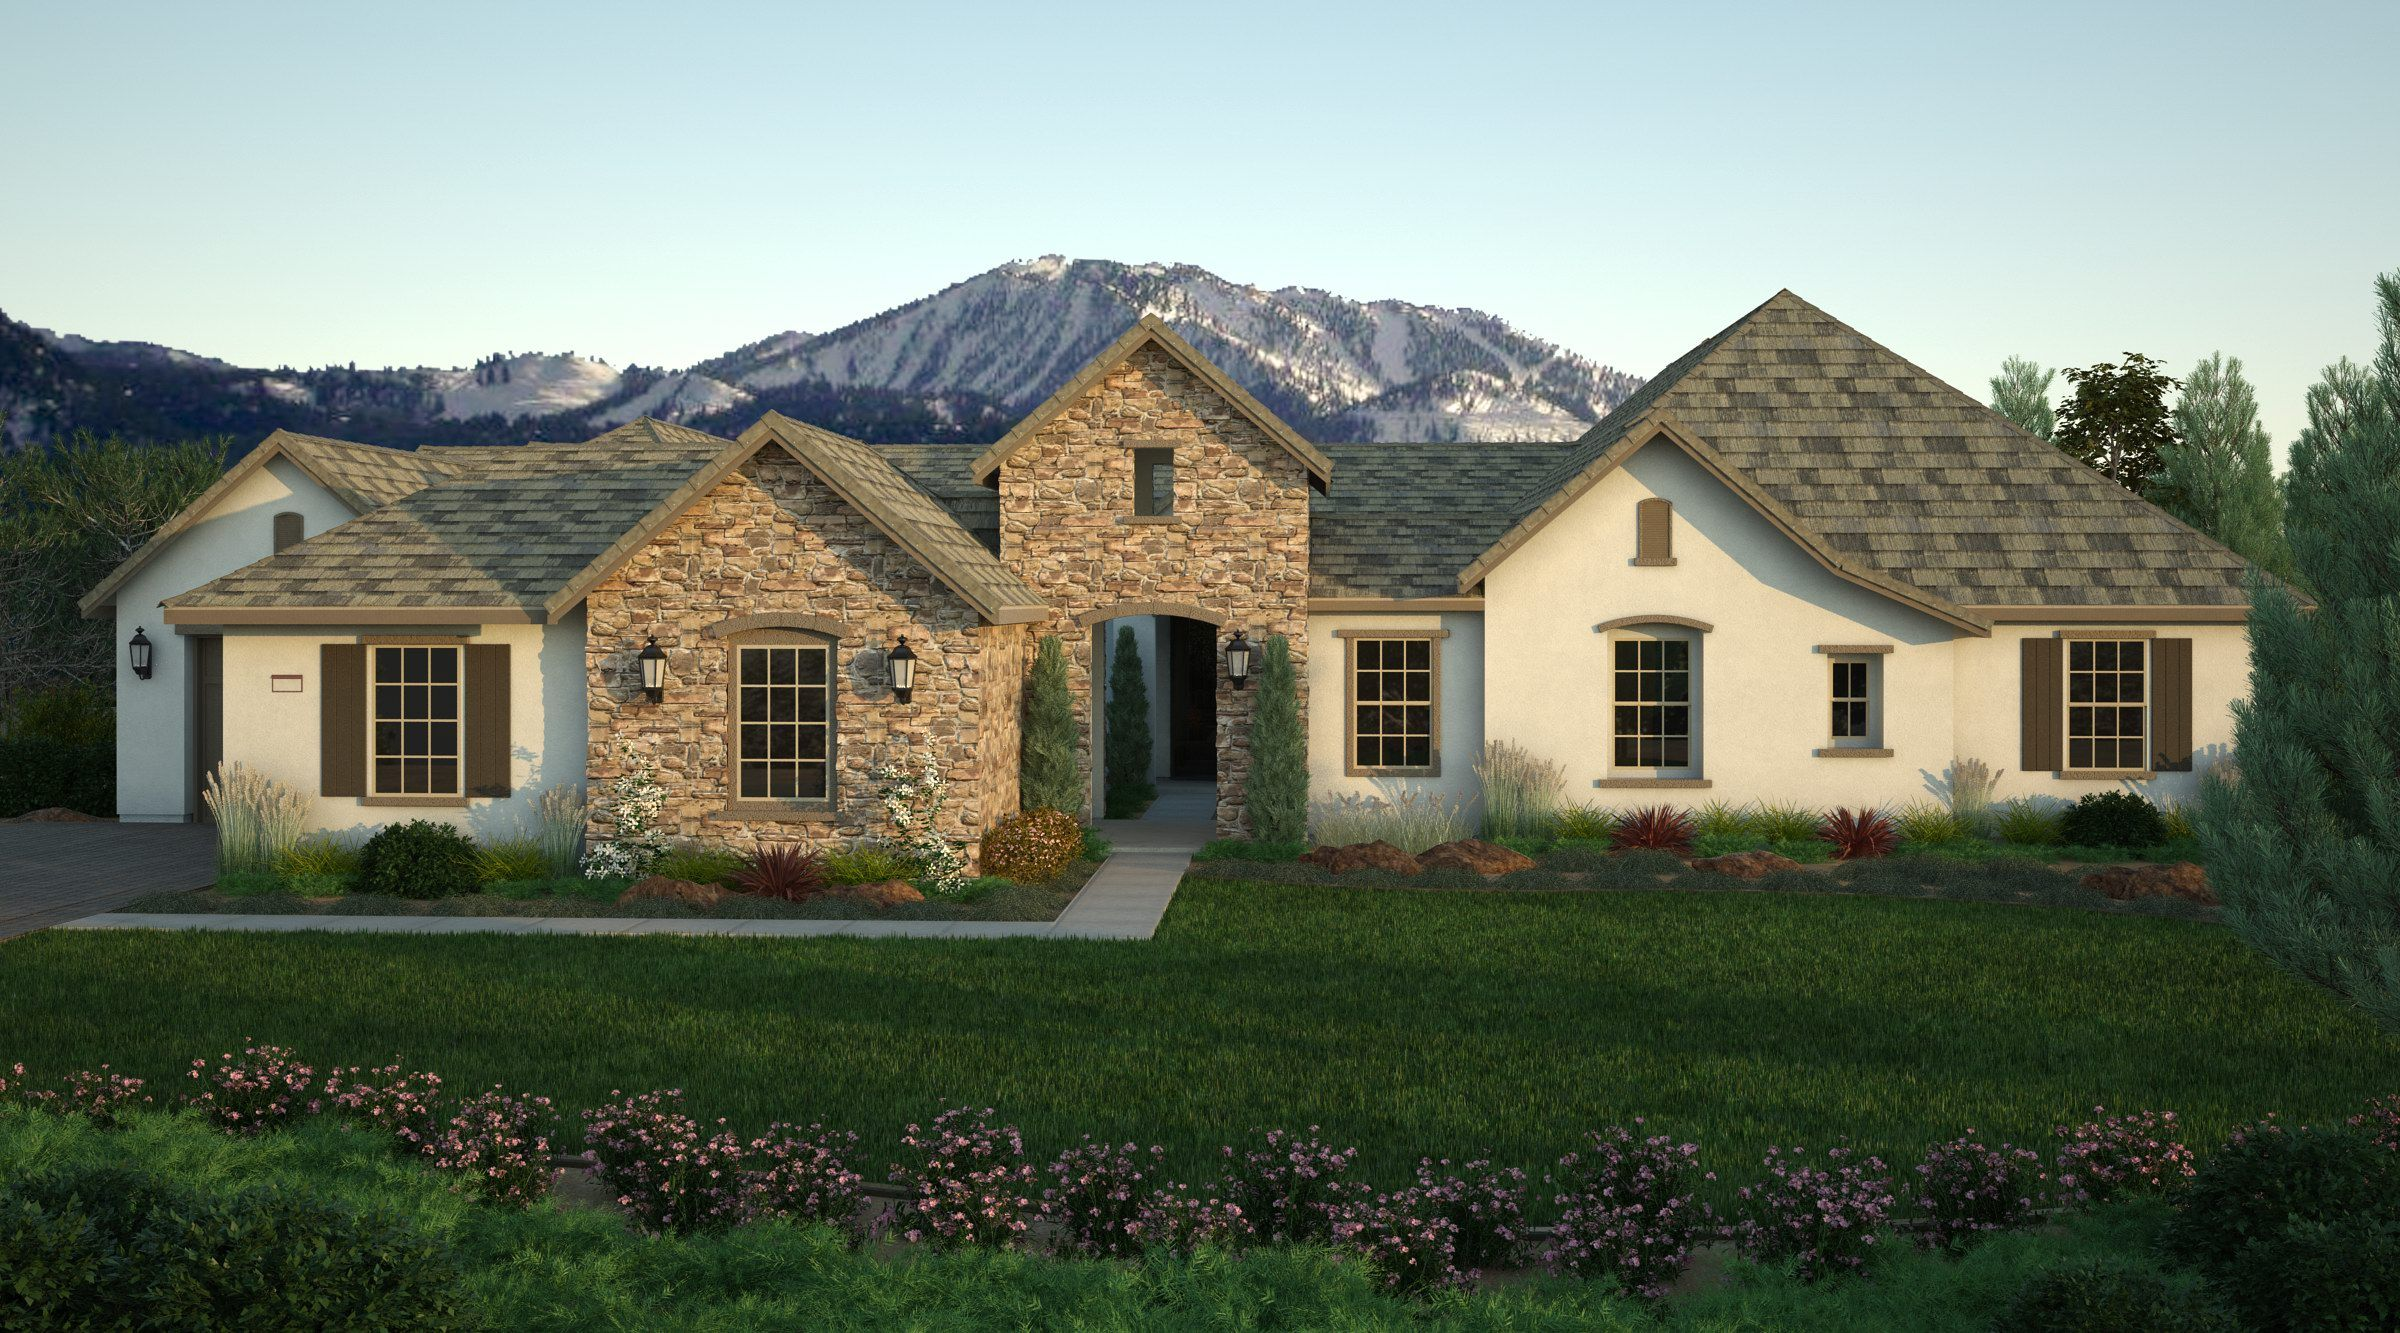 Le Champagne - Monte Vista: Reno, NV - Tim Lewis Communities